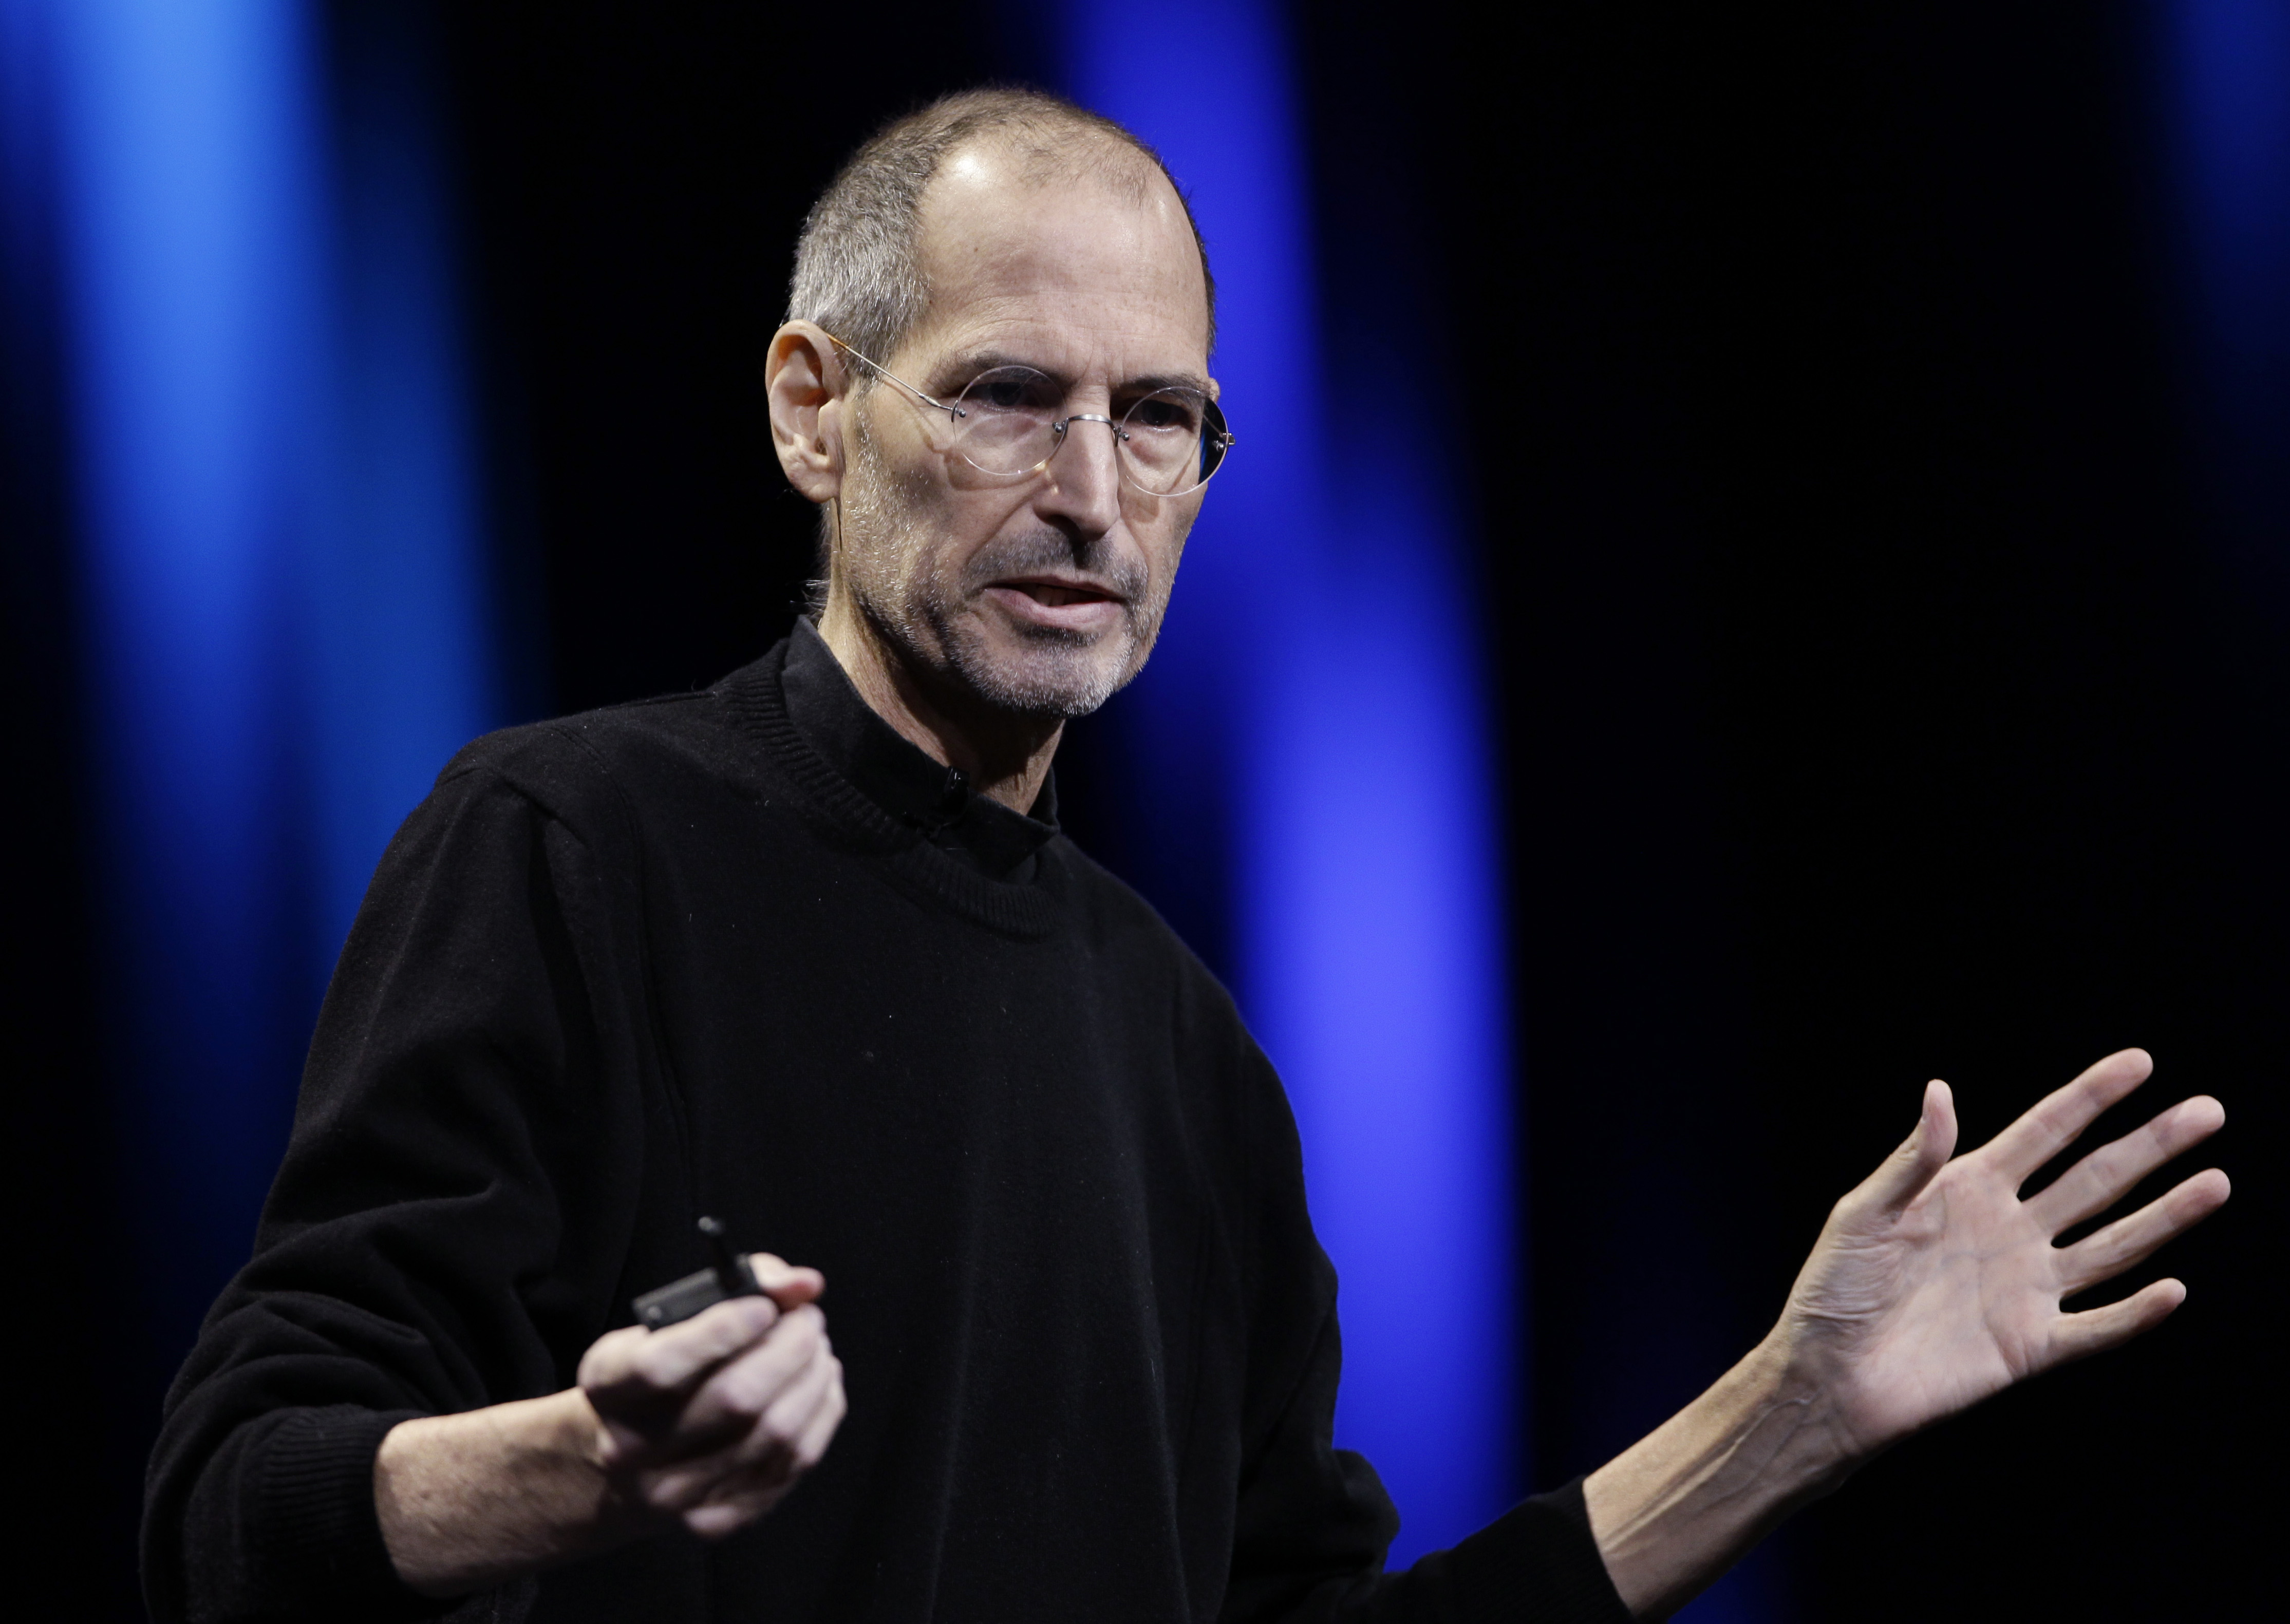 Steve Jobs gestures during a conference in San Francisco on June 6, 2011.